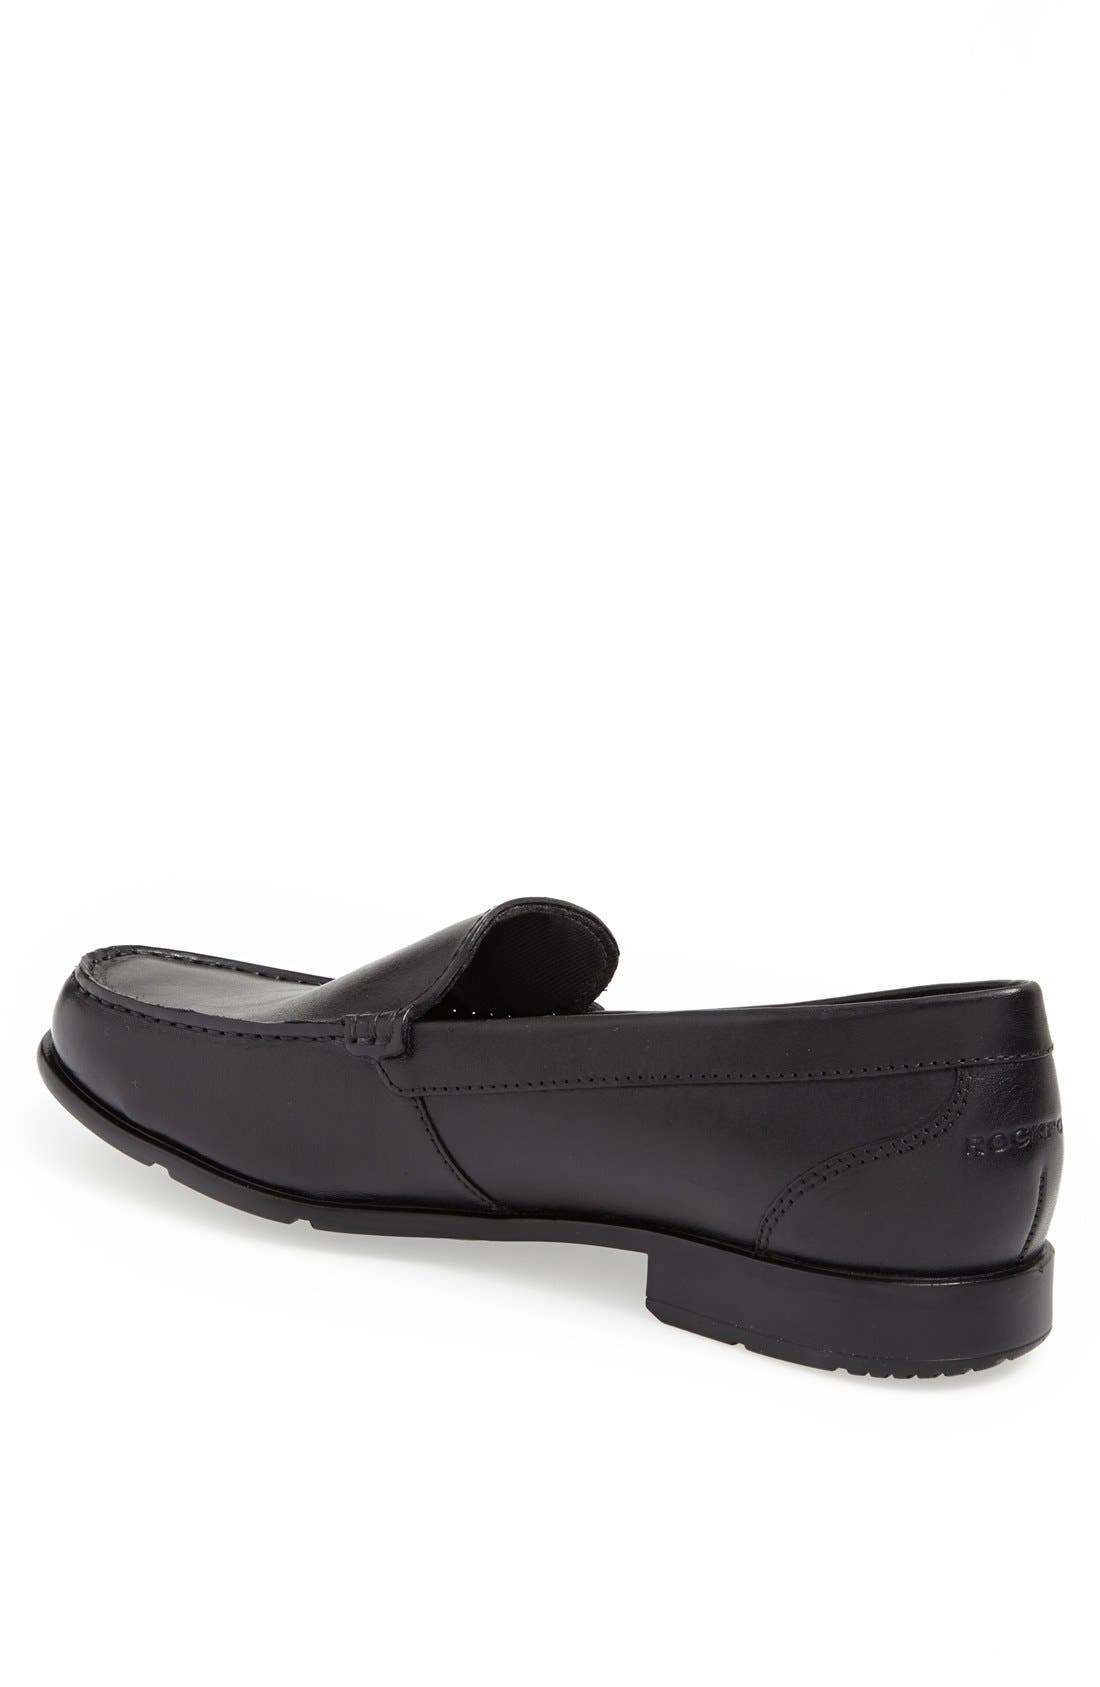 Alternate Image 2  - Rockport Classic Venetian Loafer (Men)